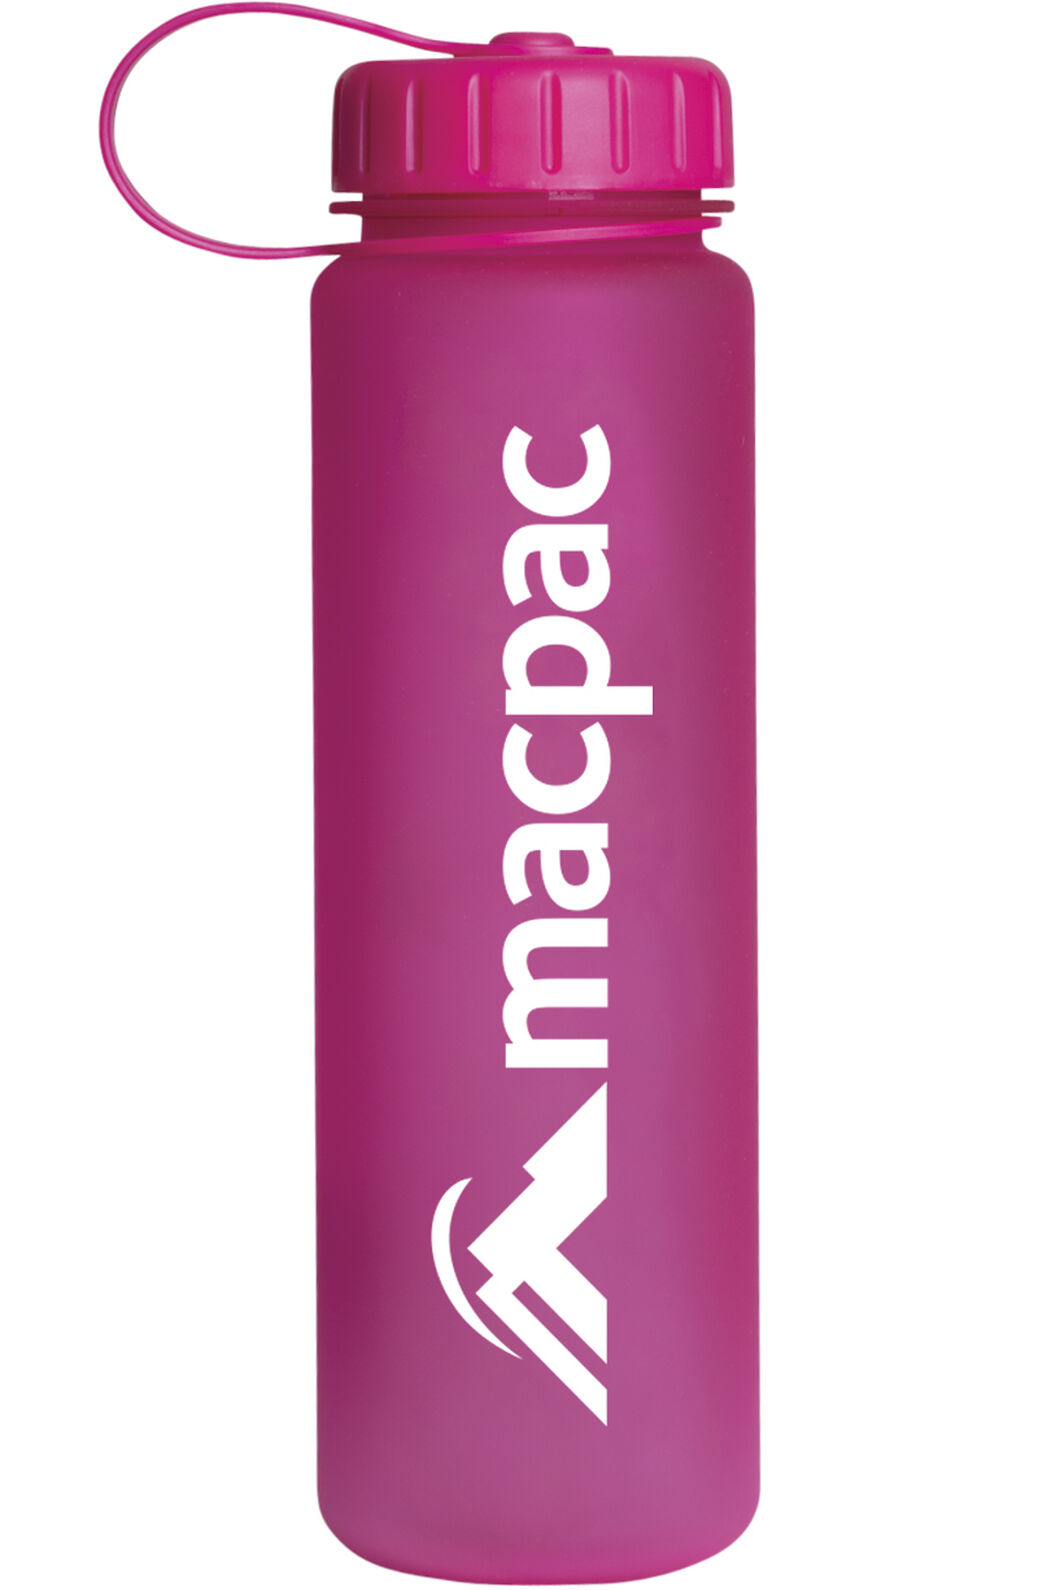 Macpac Soft Touch Water Bottle — 600 ml, Pink, hi-res